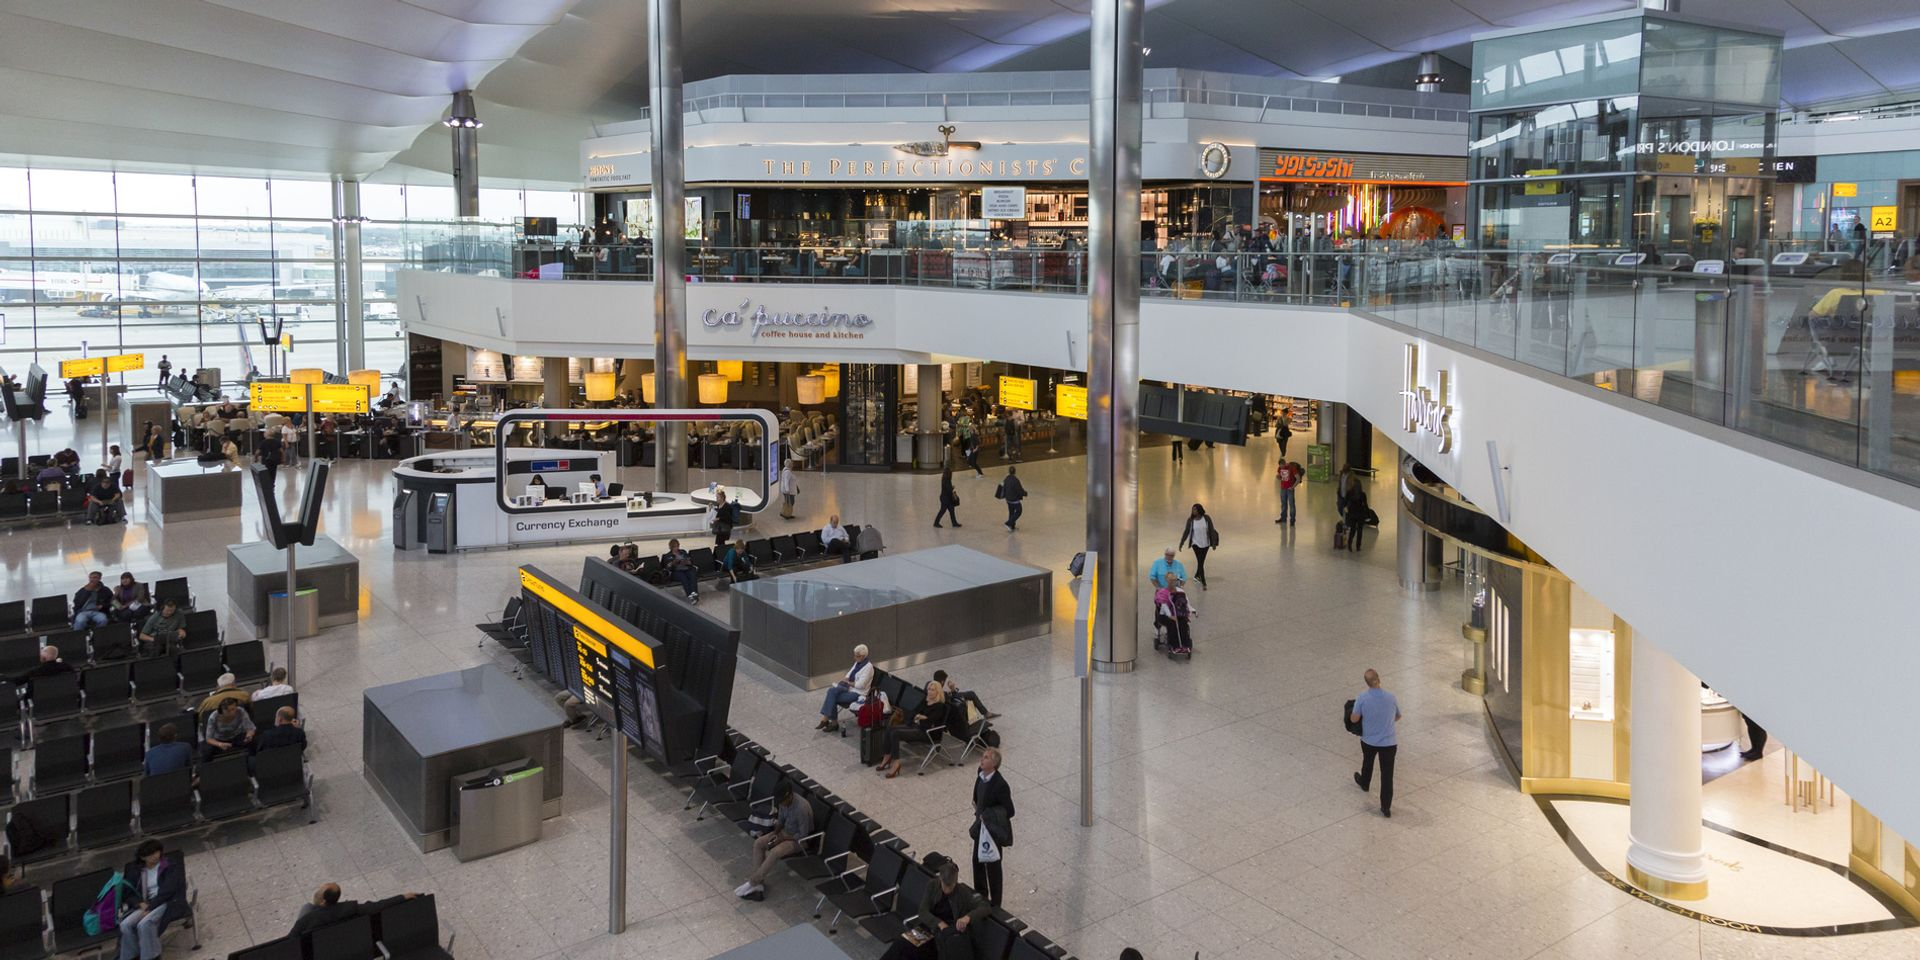 Vista su una sala d'imbarco dell'aeroporto di Londra Heathrow.